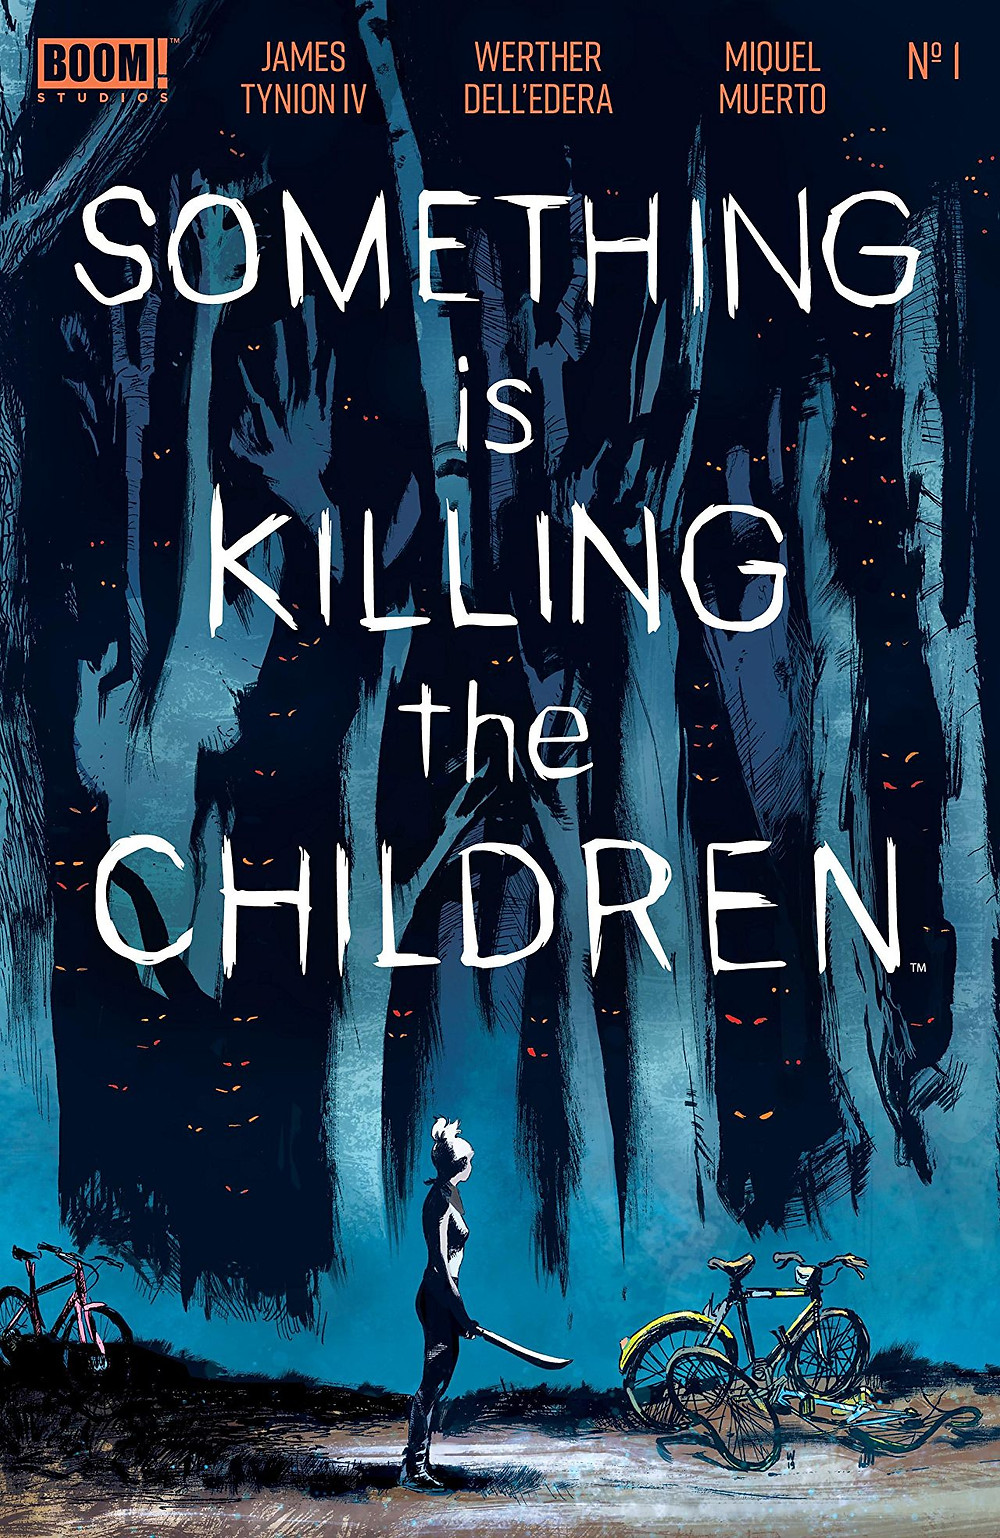 Something is Killing the Children, issue #1, cover, BOOM! Studios, Tynion IV/Dell'edera